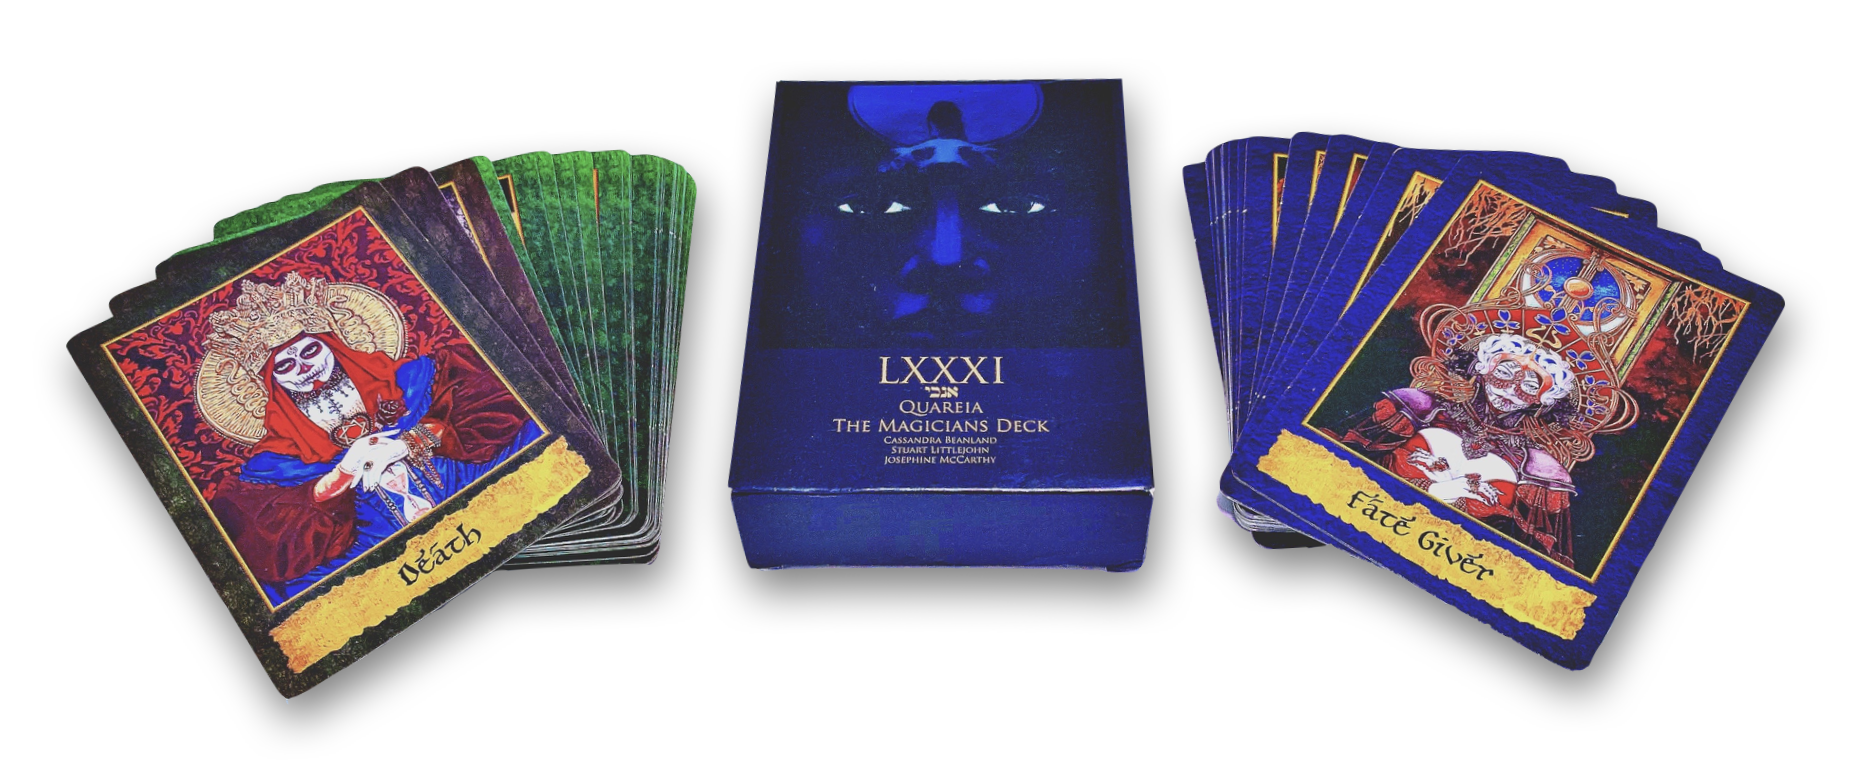 The LXXXI Quareia Magicians Deck | 1st edition | now expanded and revised 2nd edition open for order!